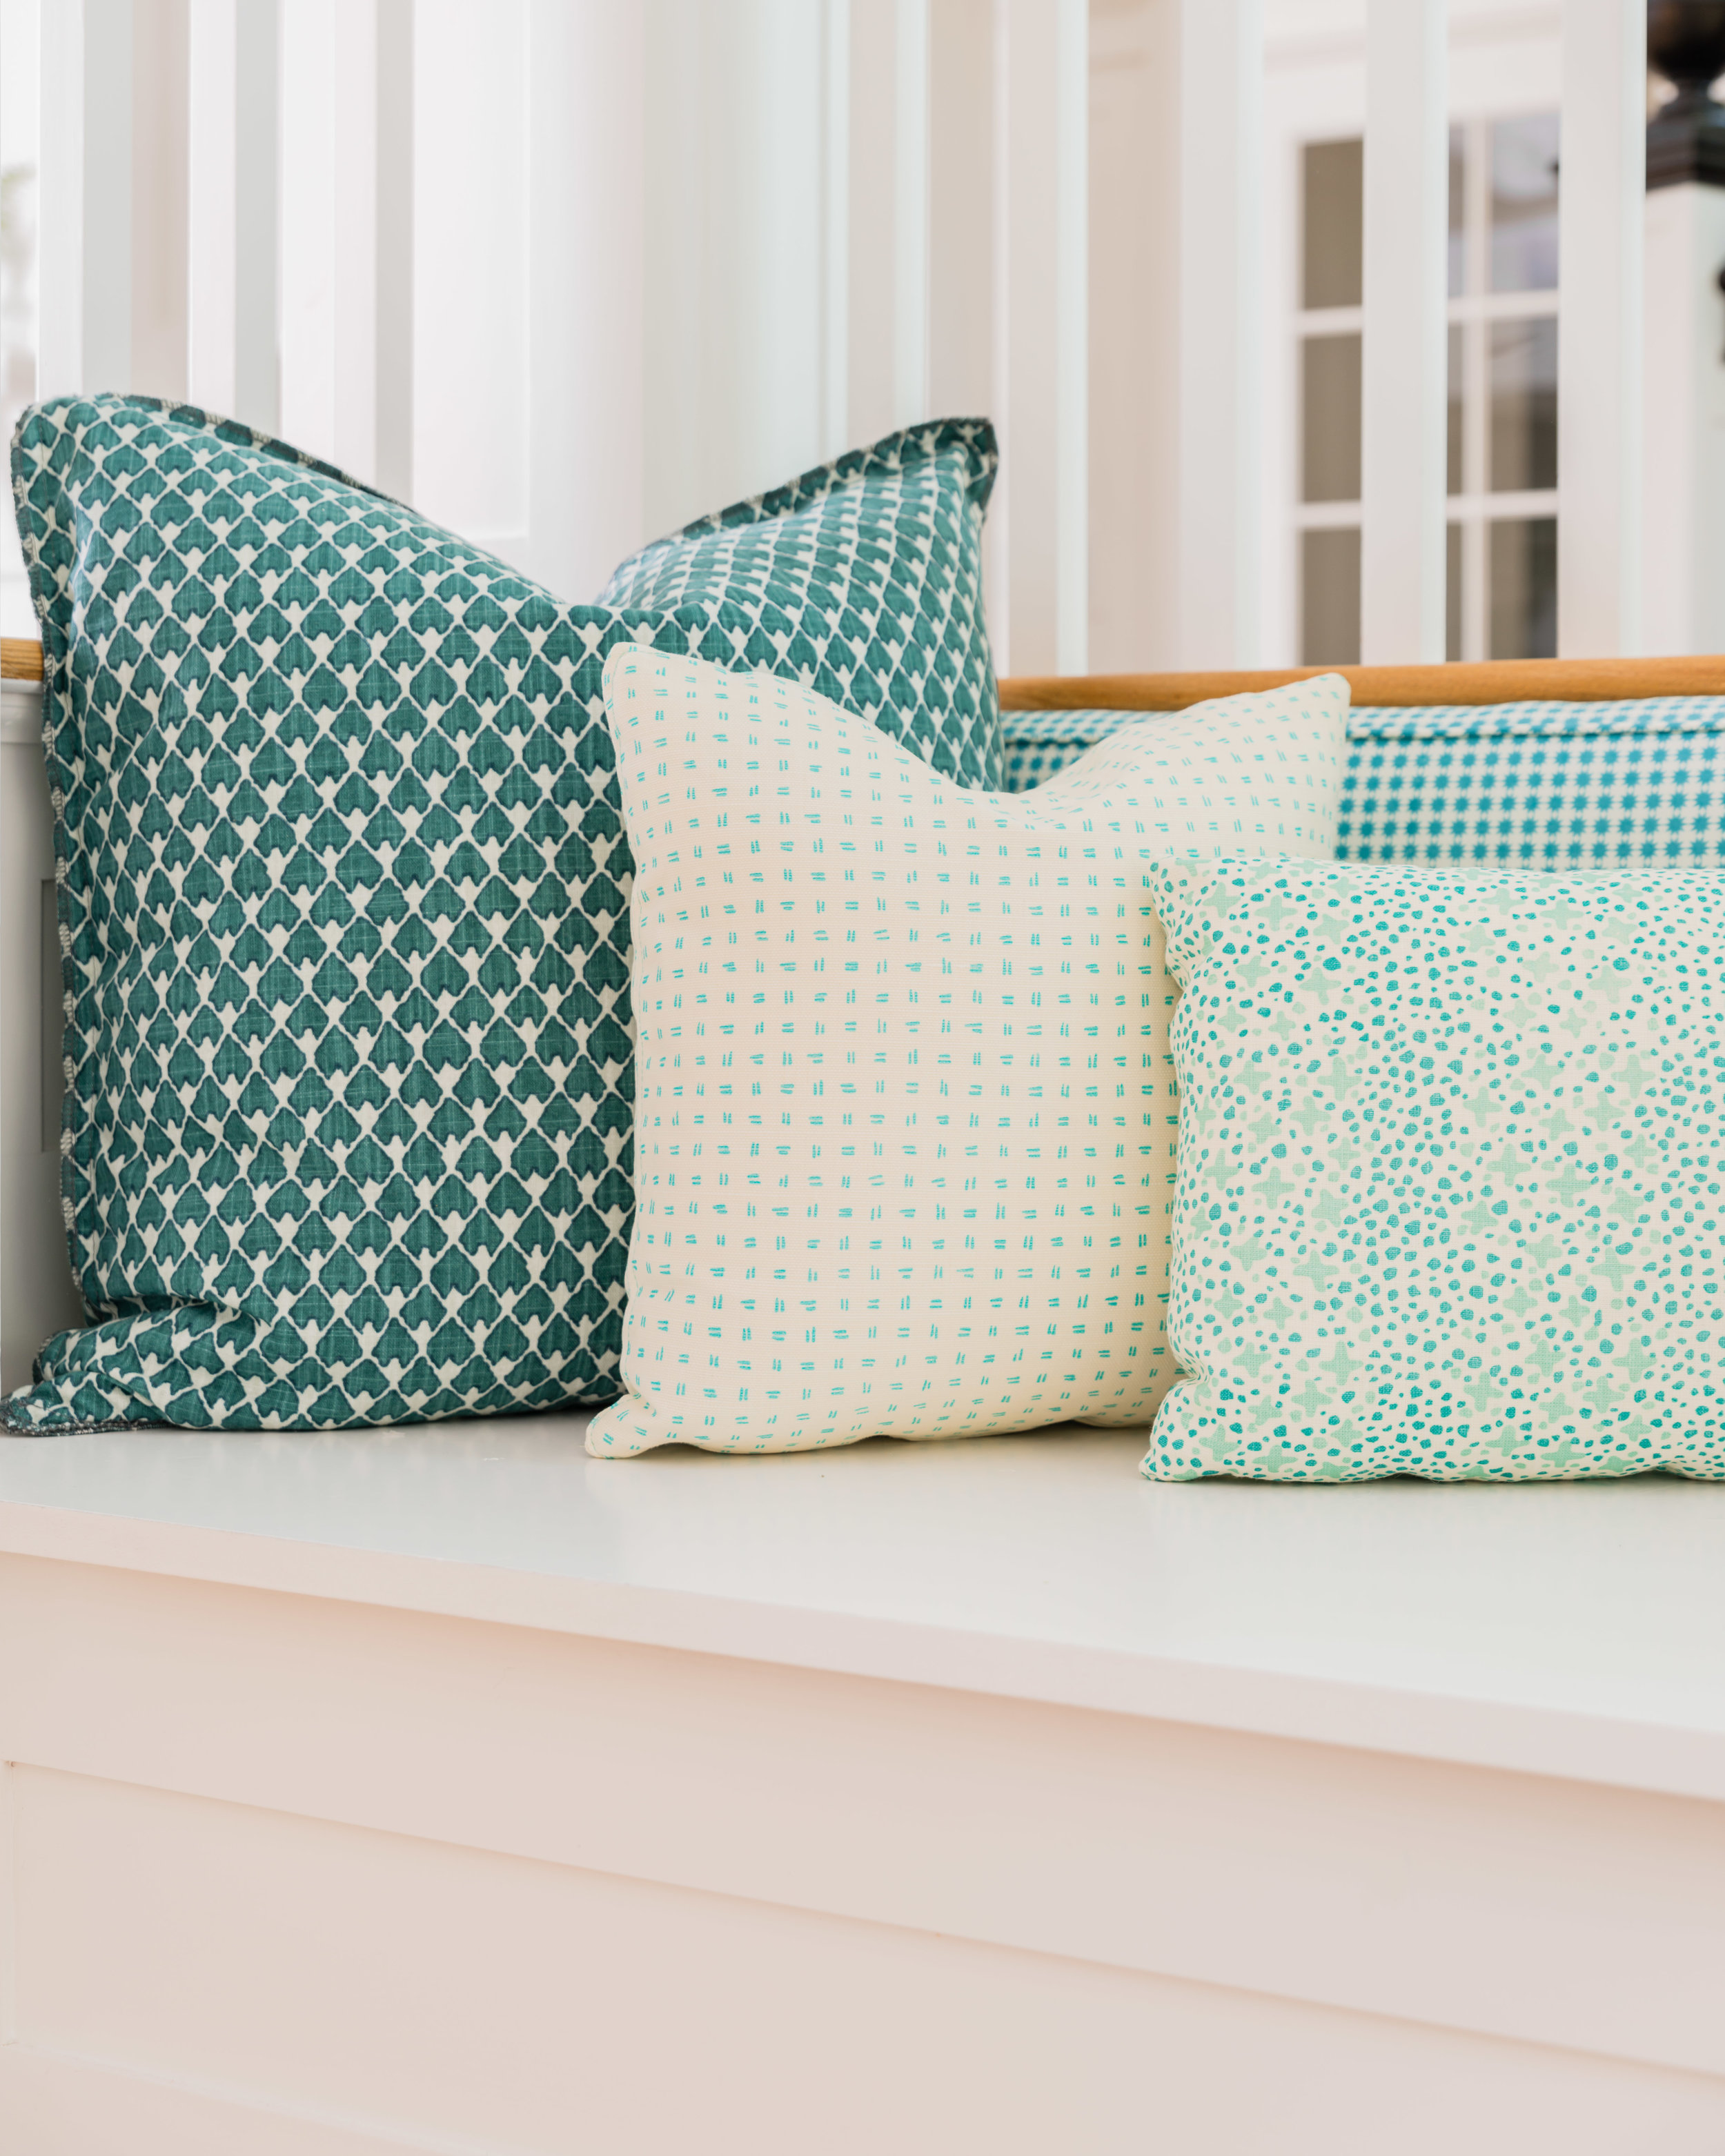 Pillows in  Pindle r Lagos Teal and  Quadrille Alan Campbell Jacks II . Design:  Justine Sterling Design  // Photo:  Jessica Delaney